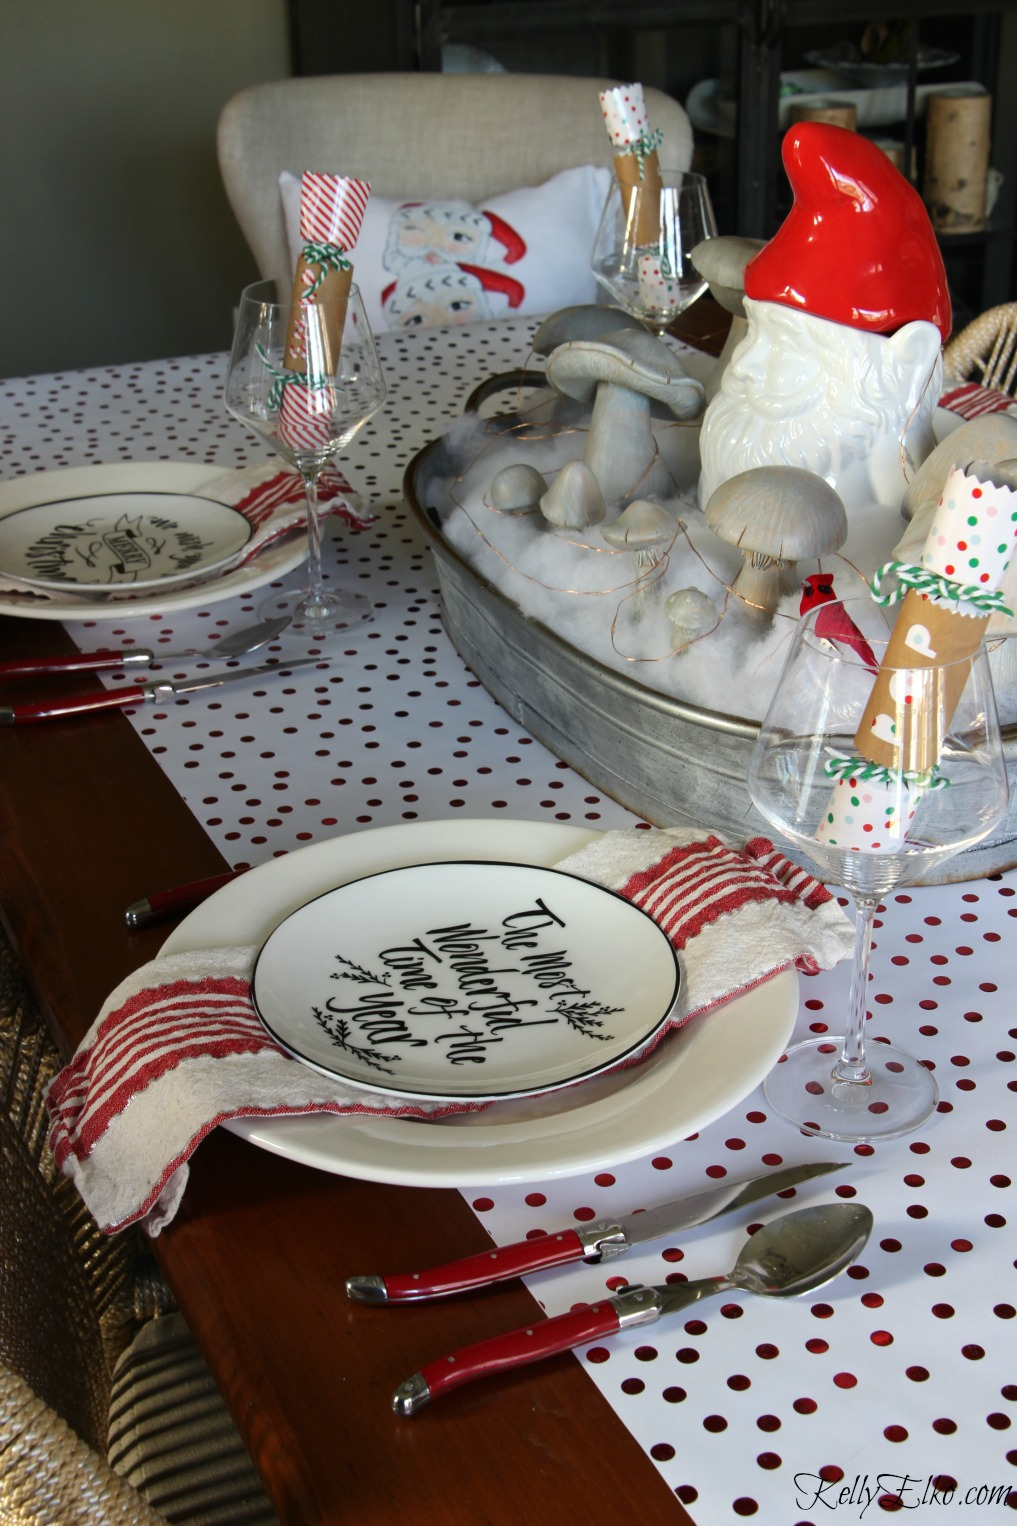 Love this festive red and white Christmas table with gnome centerpiece! kellyelko.com